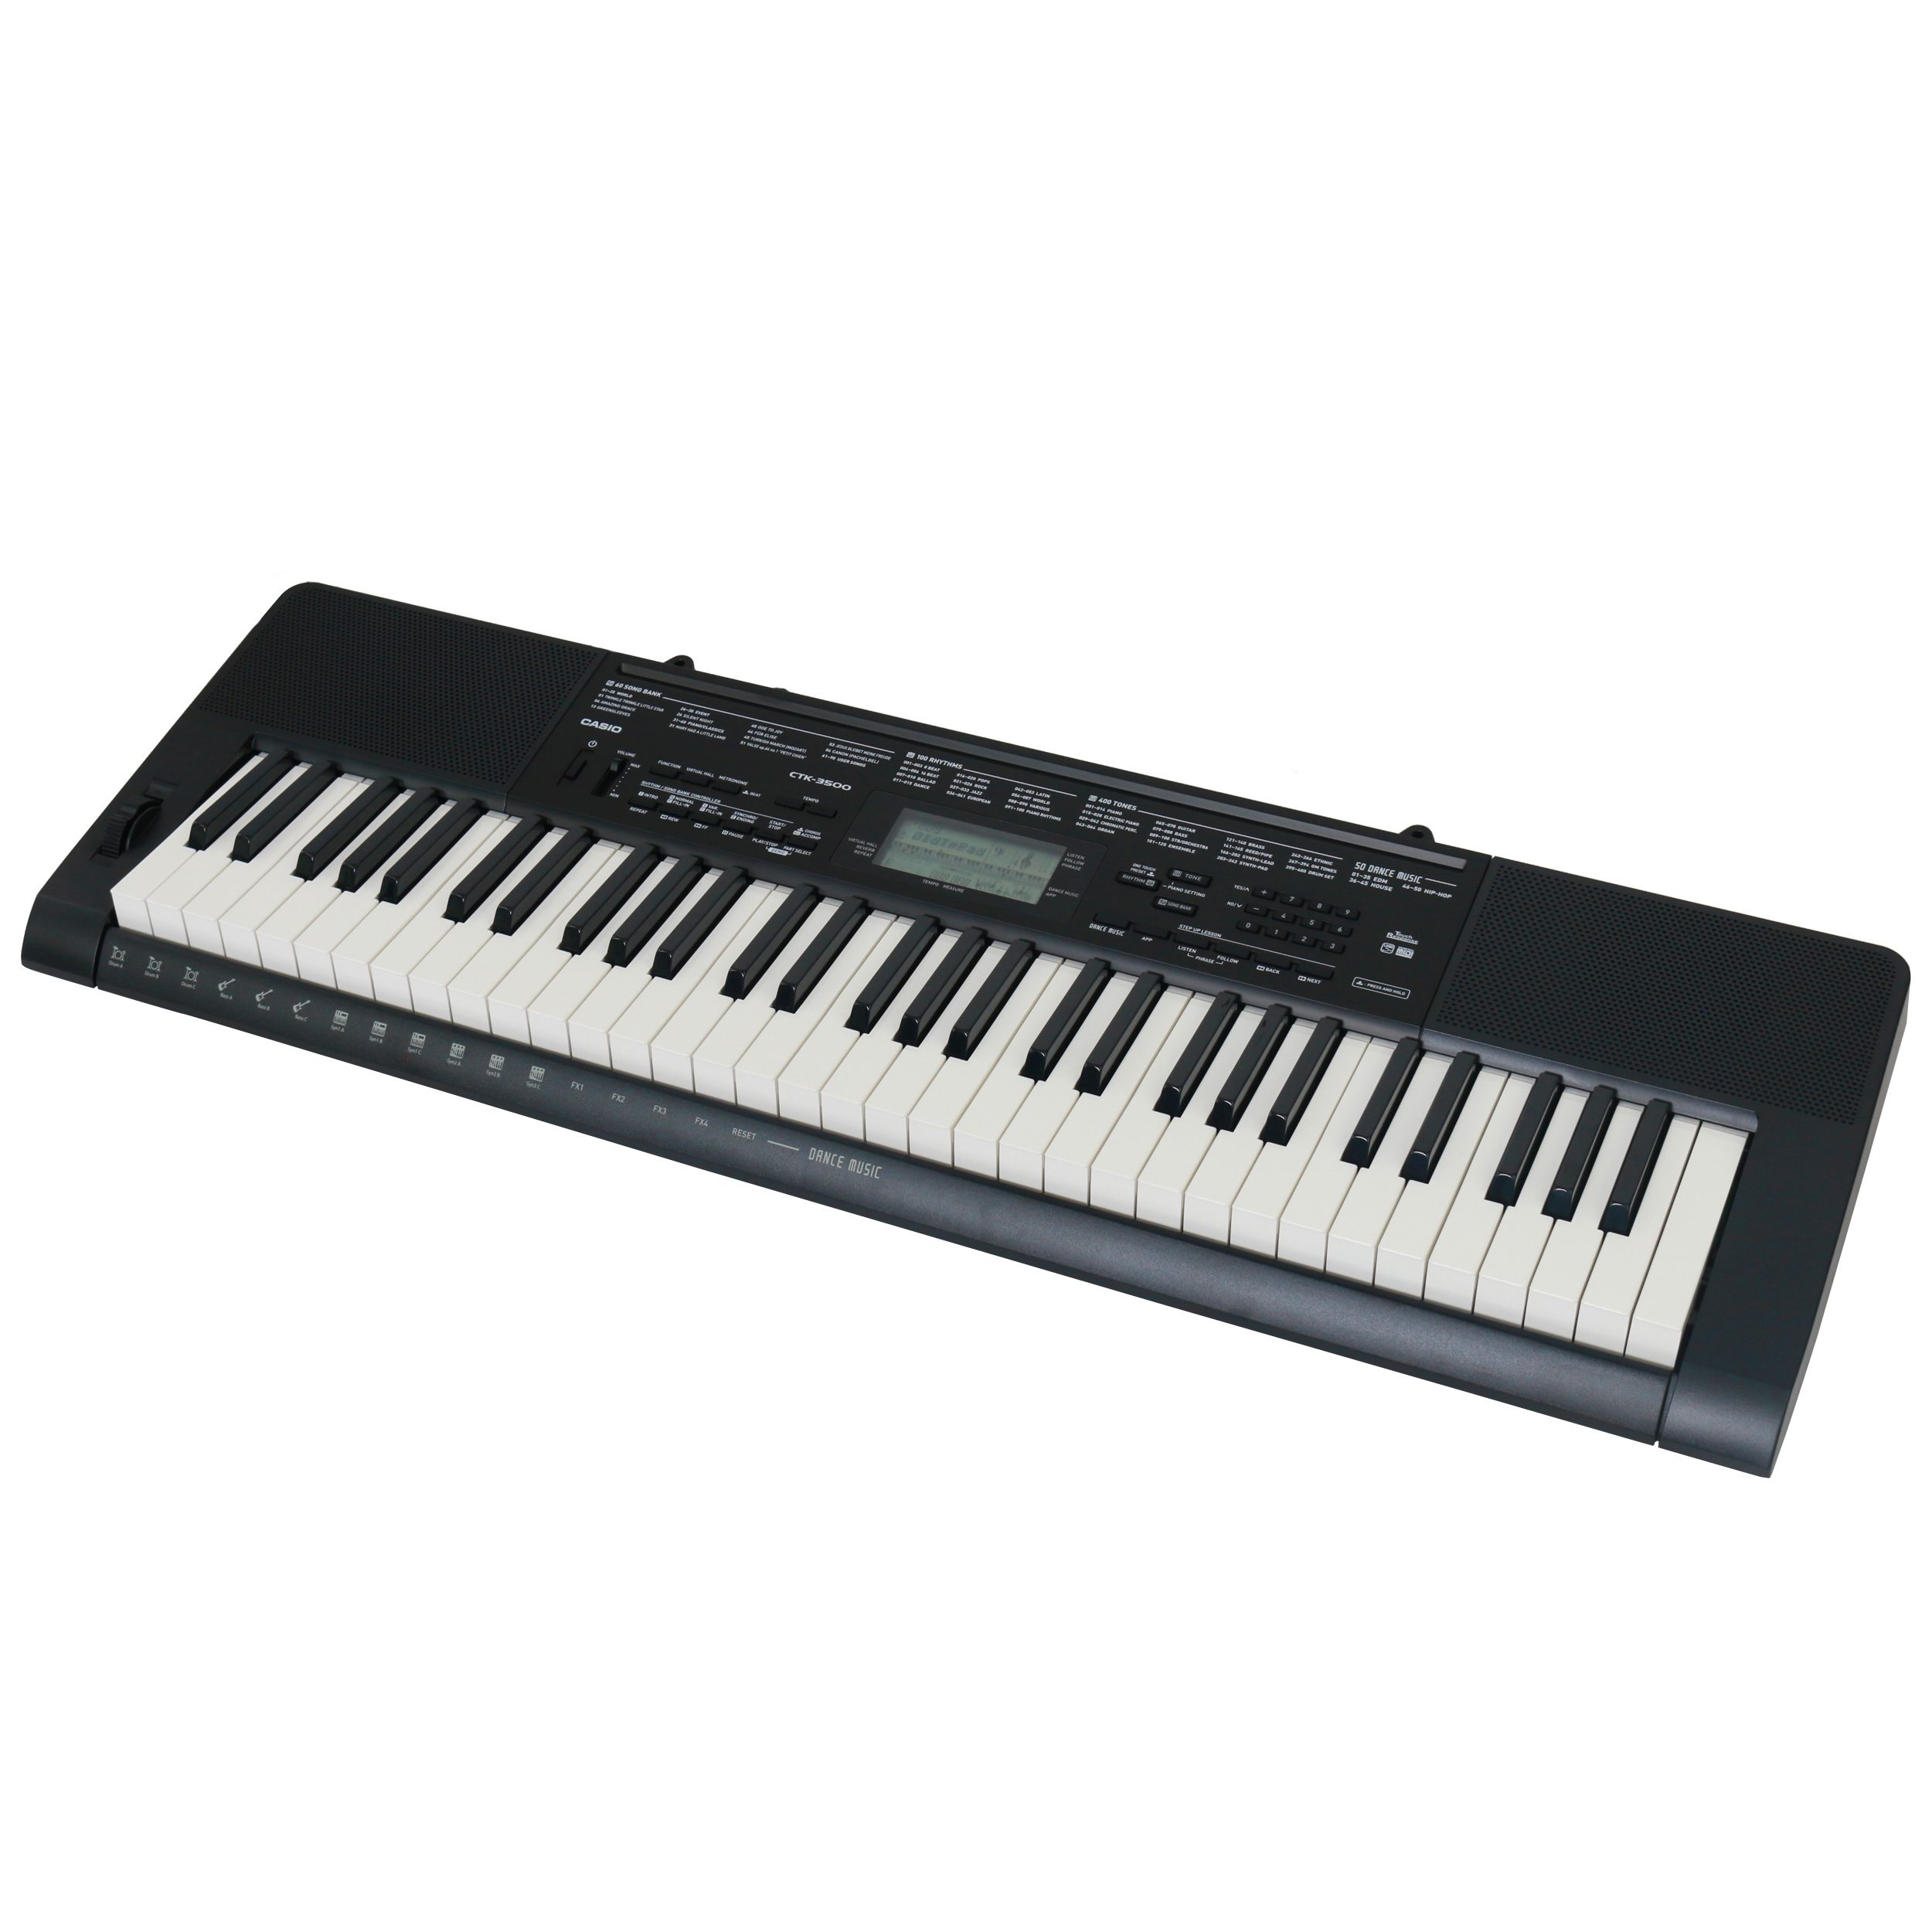 Casio CTK 3500 Keyboard, 61 Tasten (USB|MIDI)